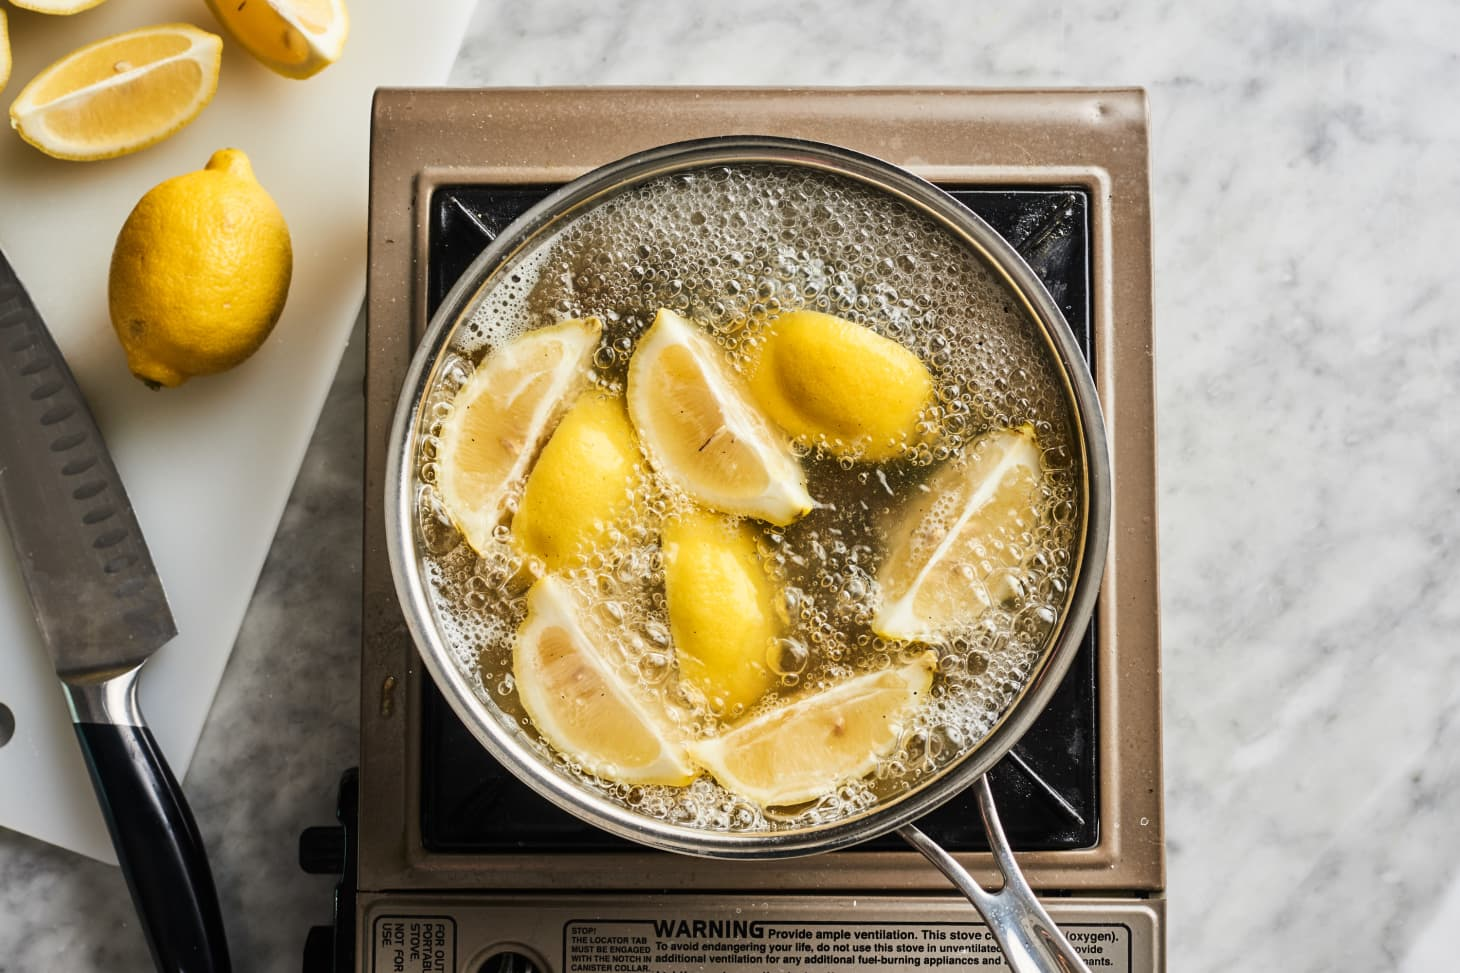 Boiling mixture of lemons and water to clean burnt pot